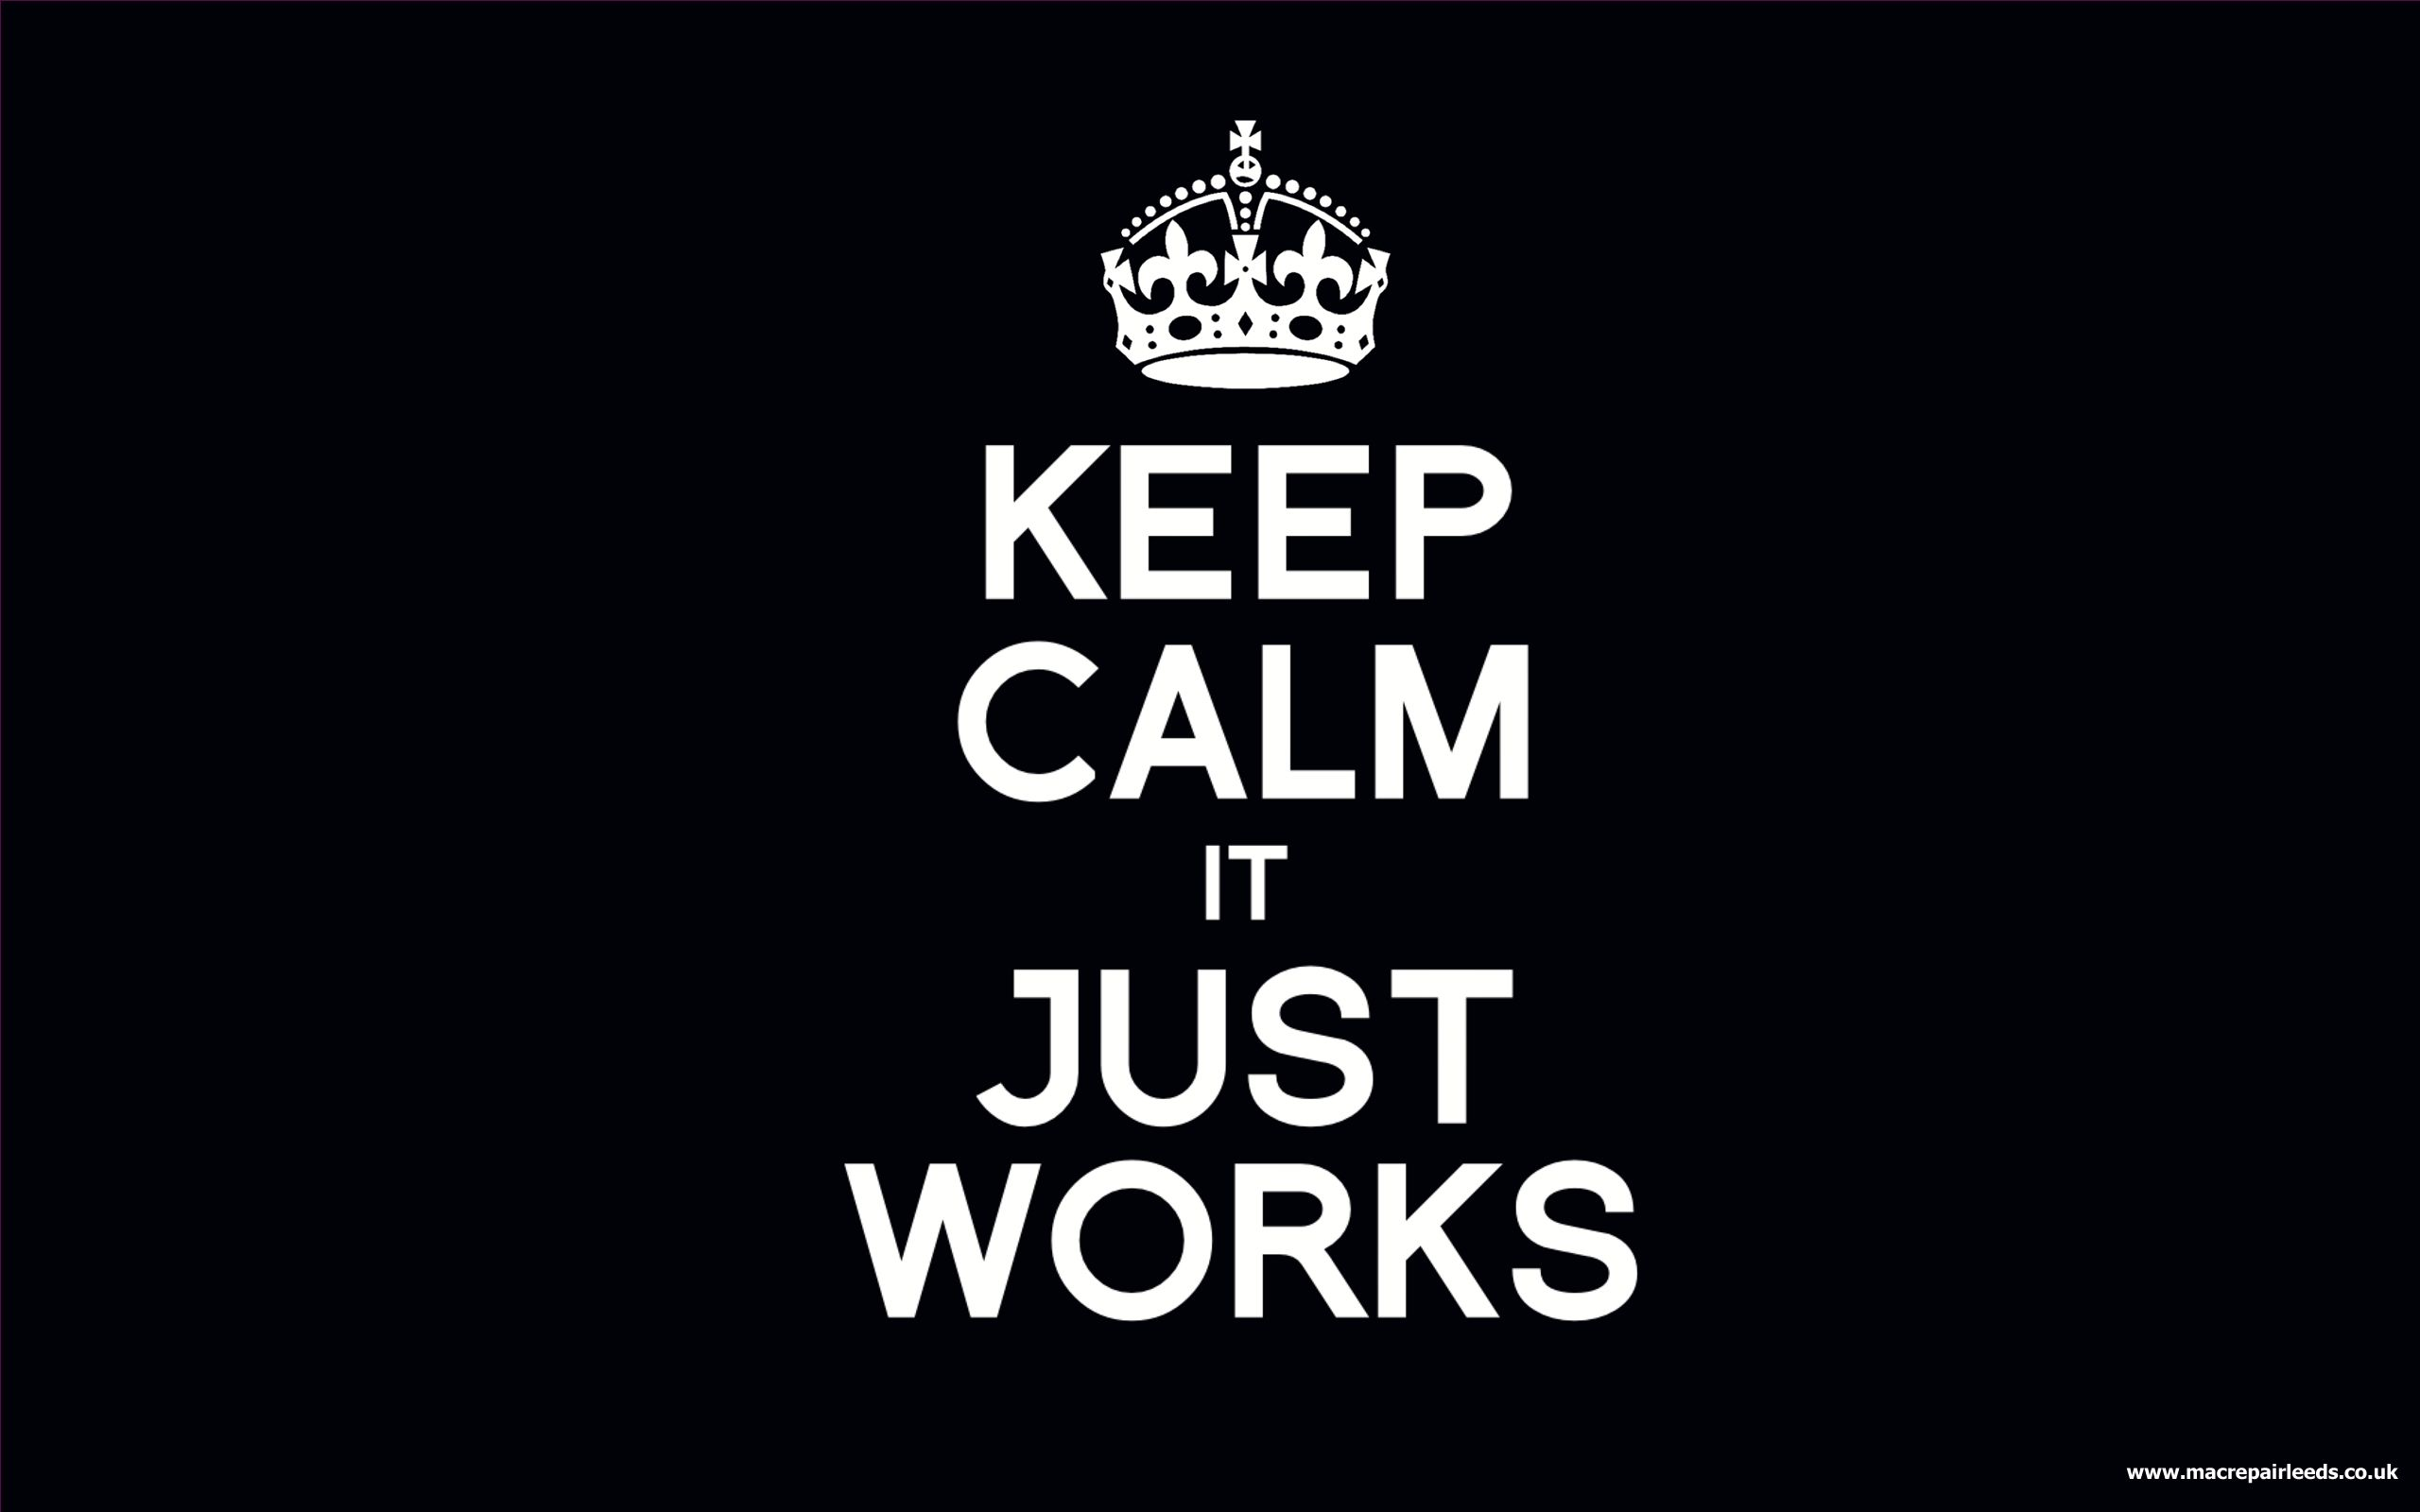 Keep calm it just works